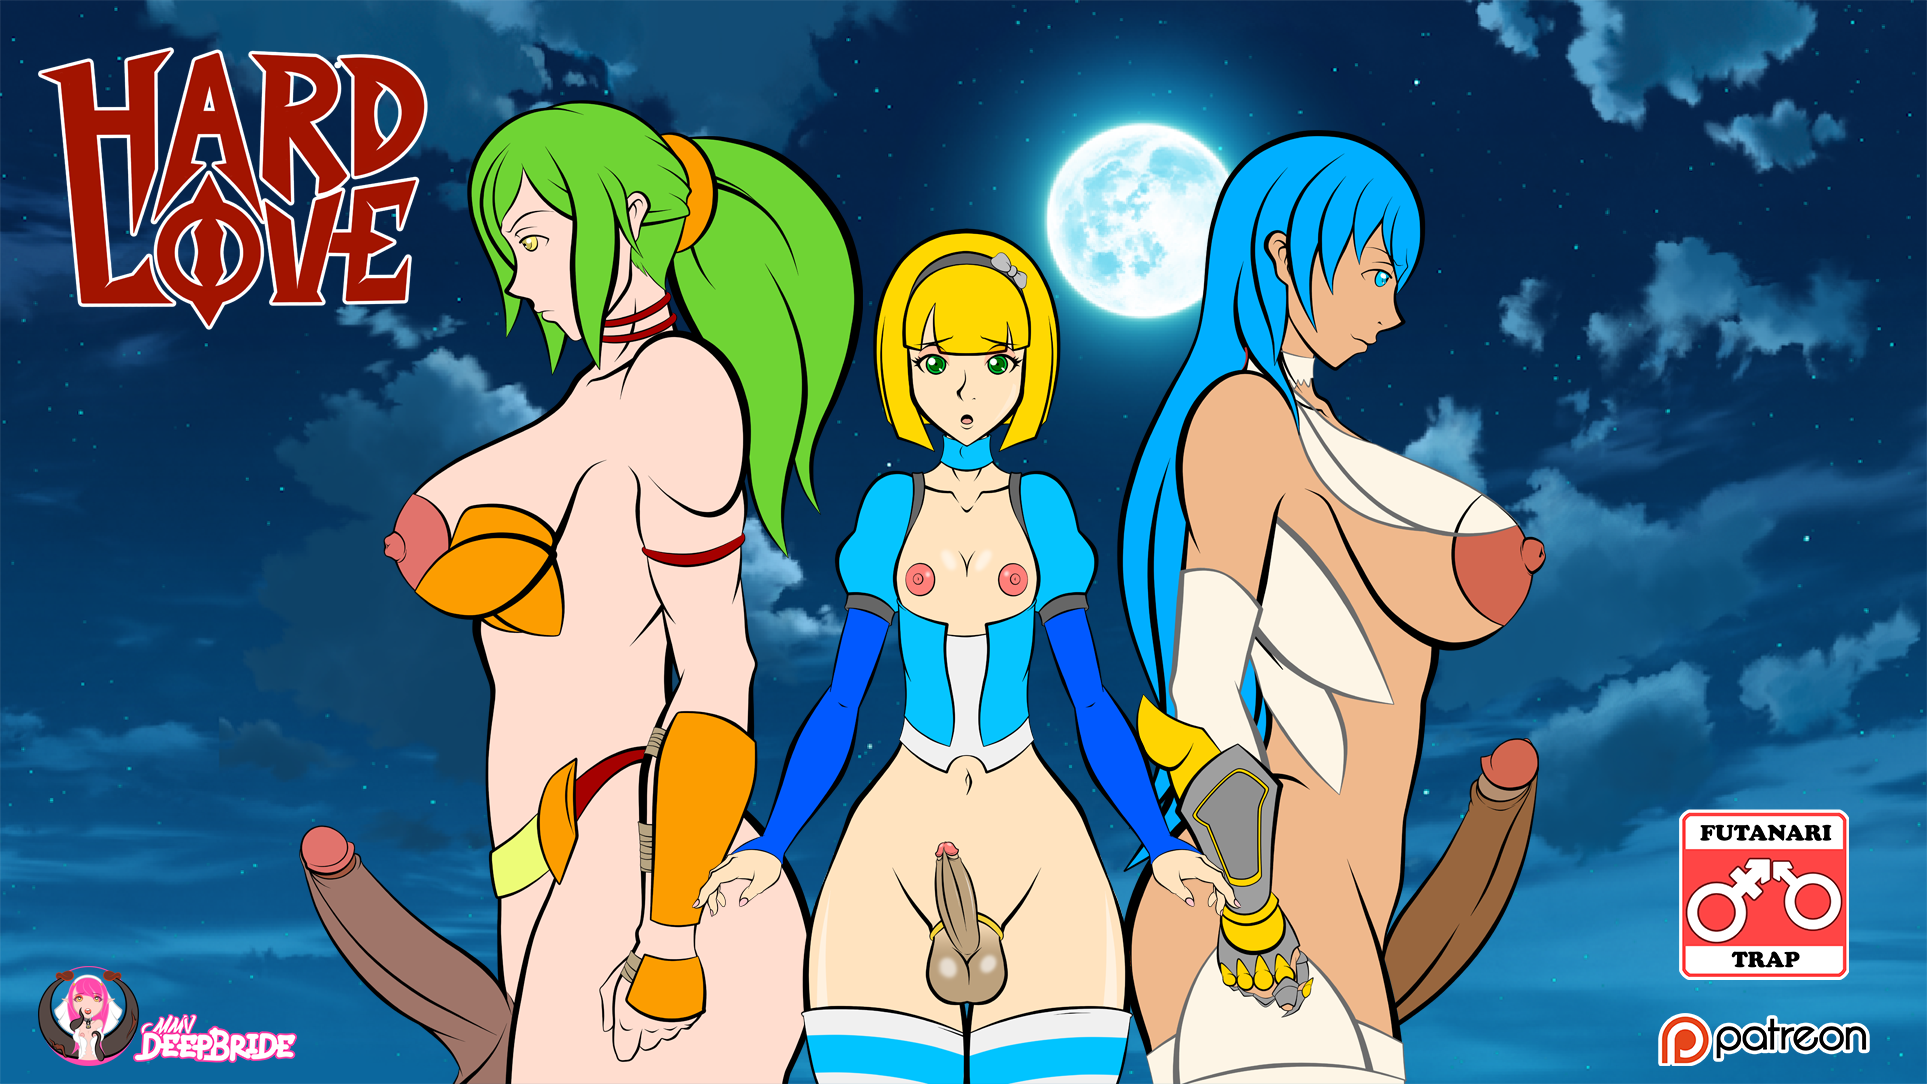 futanari flash game